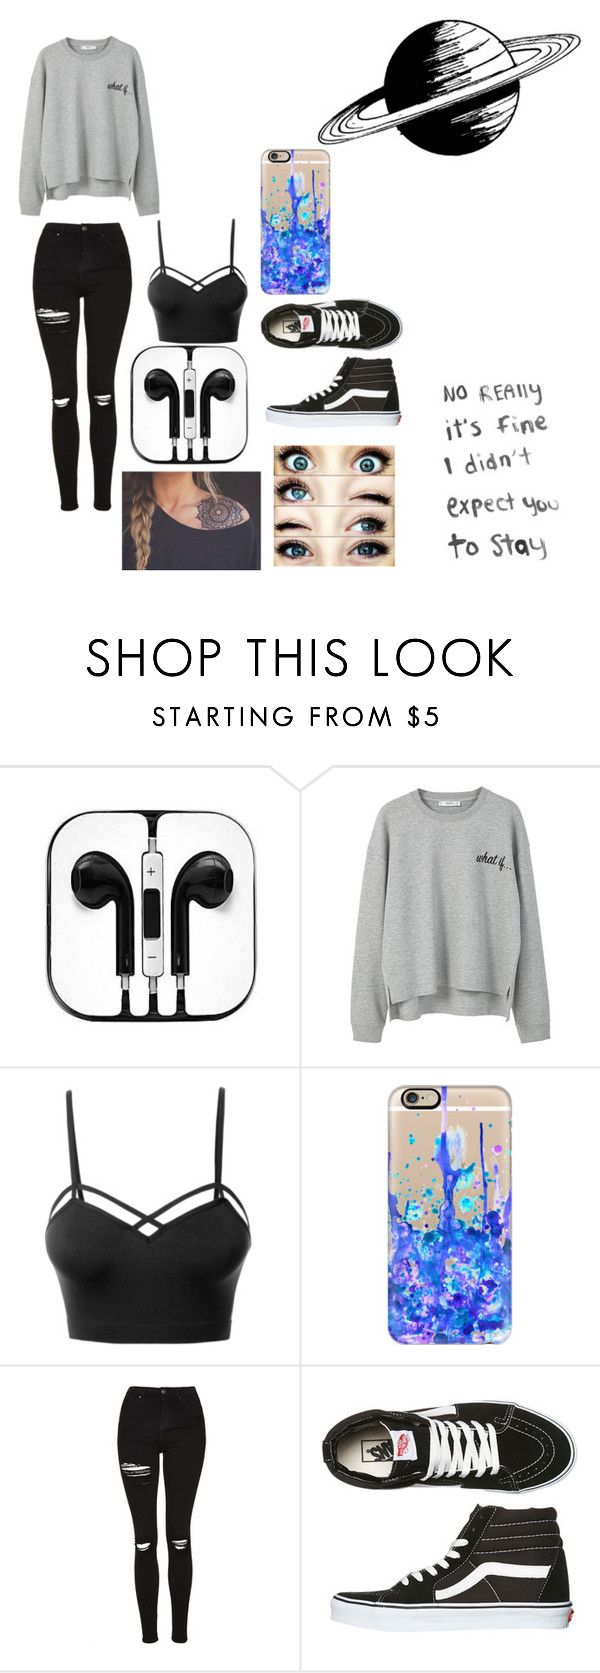 """Are you high enough without the Mary Jane like me"" by sweetfrogg29 ❤ liked on Polyvore featuring MANGO, LE3NO, Casetify, Topshop and Vans"